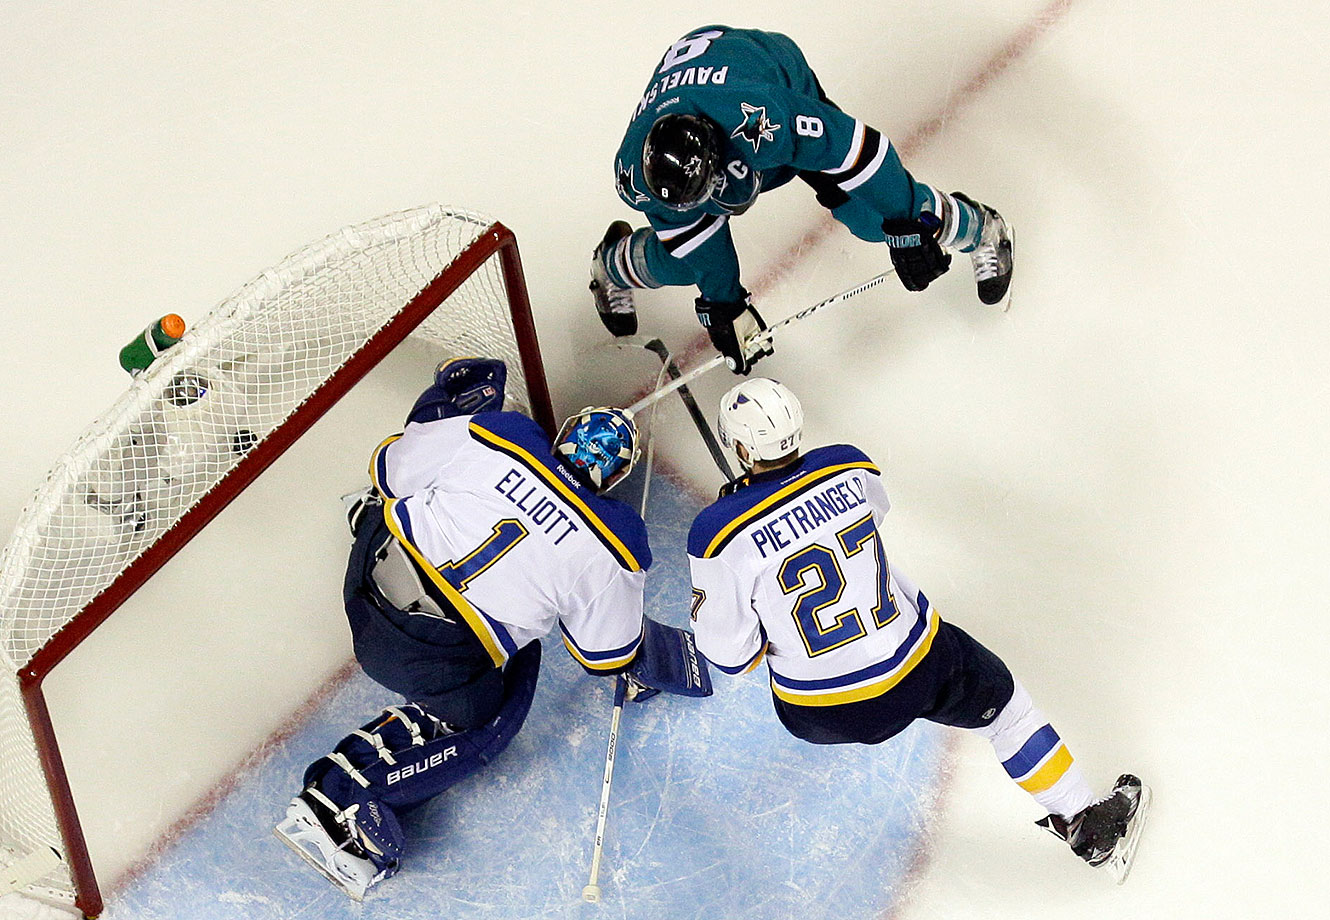 San Jose Sharks' Joe Pavelski (8) scores past St. Louis Blues goalie Brian Elliott (1) and the Blues' Alex Pietrangelo (27) during the first period in Game 6 of the NHL hockey Stanley Cup Western Conference finals Wednesday, May 25, 2016, in San Jose, Calif.